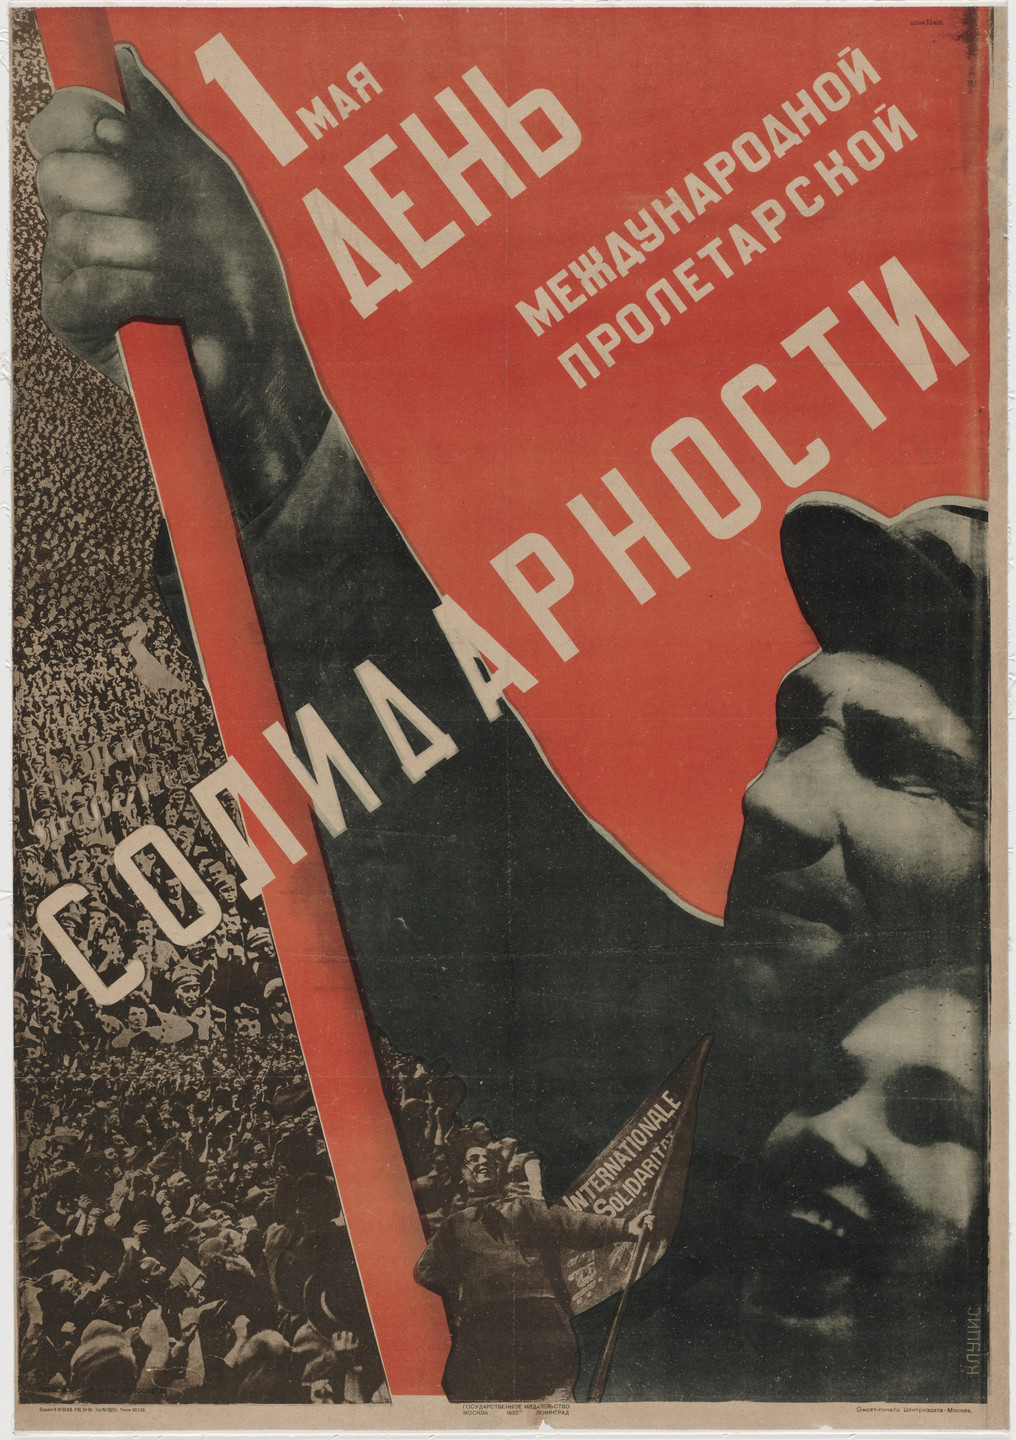 Gustav Klutsis, Sergei Senkin. First of May - Day of the International Proletarian Solidarity. 1930